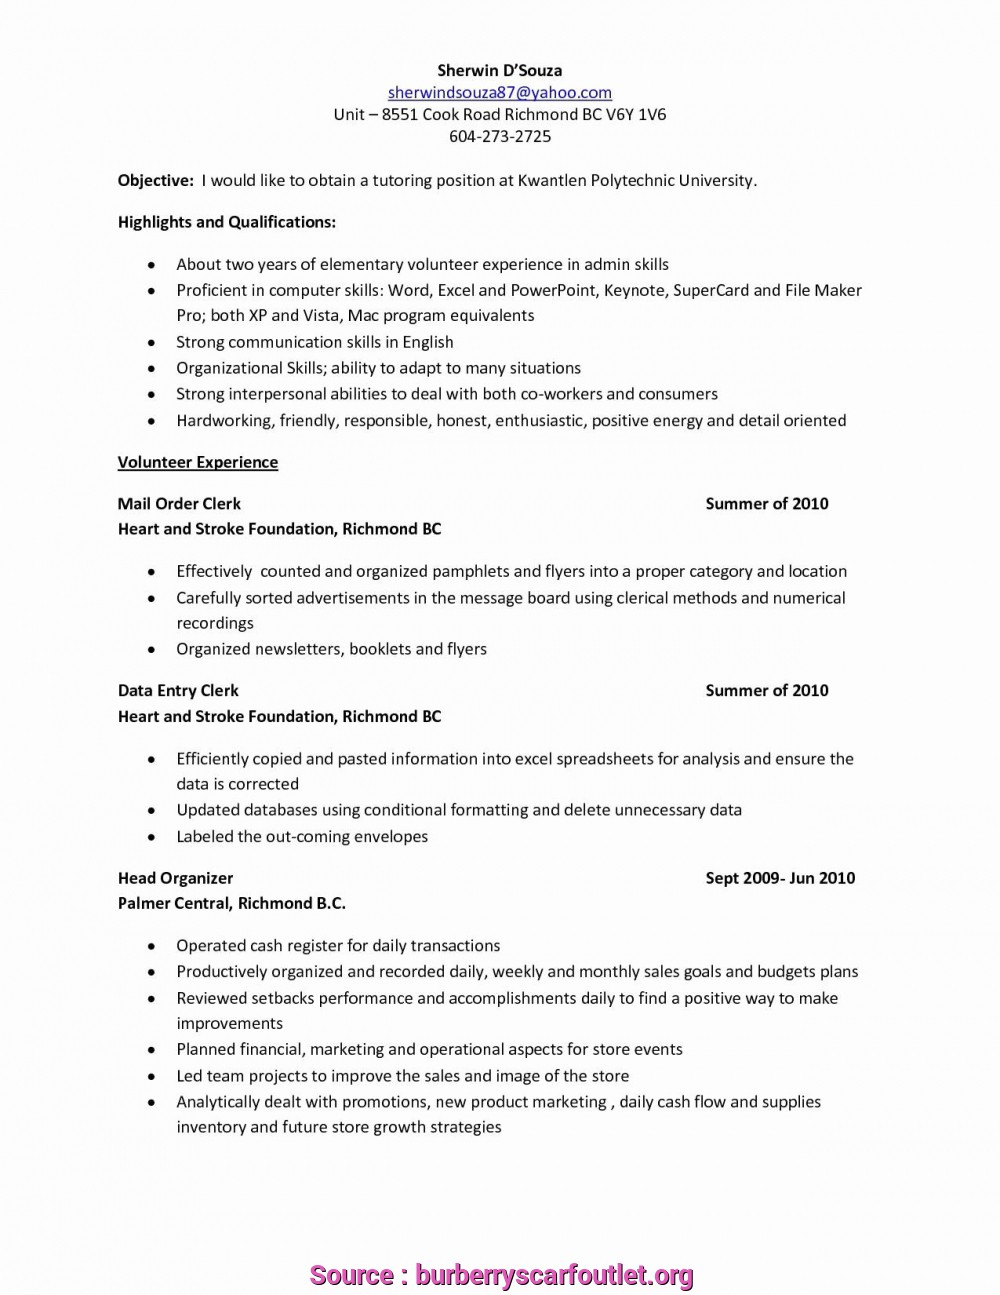 028 Plan Templates Tutor Lesson Template Sample On Reading pertaining to Tutoring Template To Fill Out Weekly